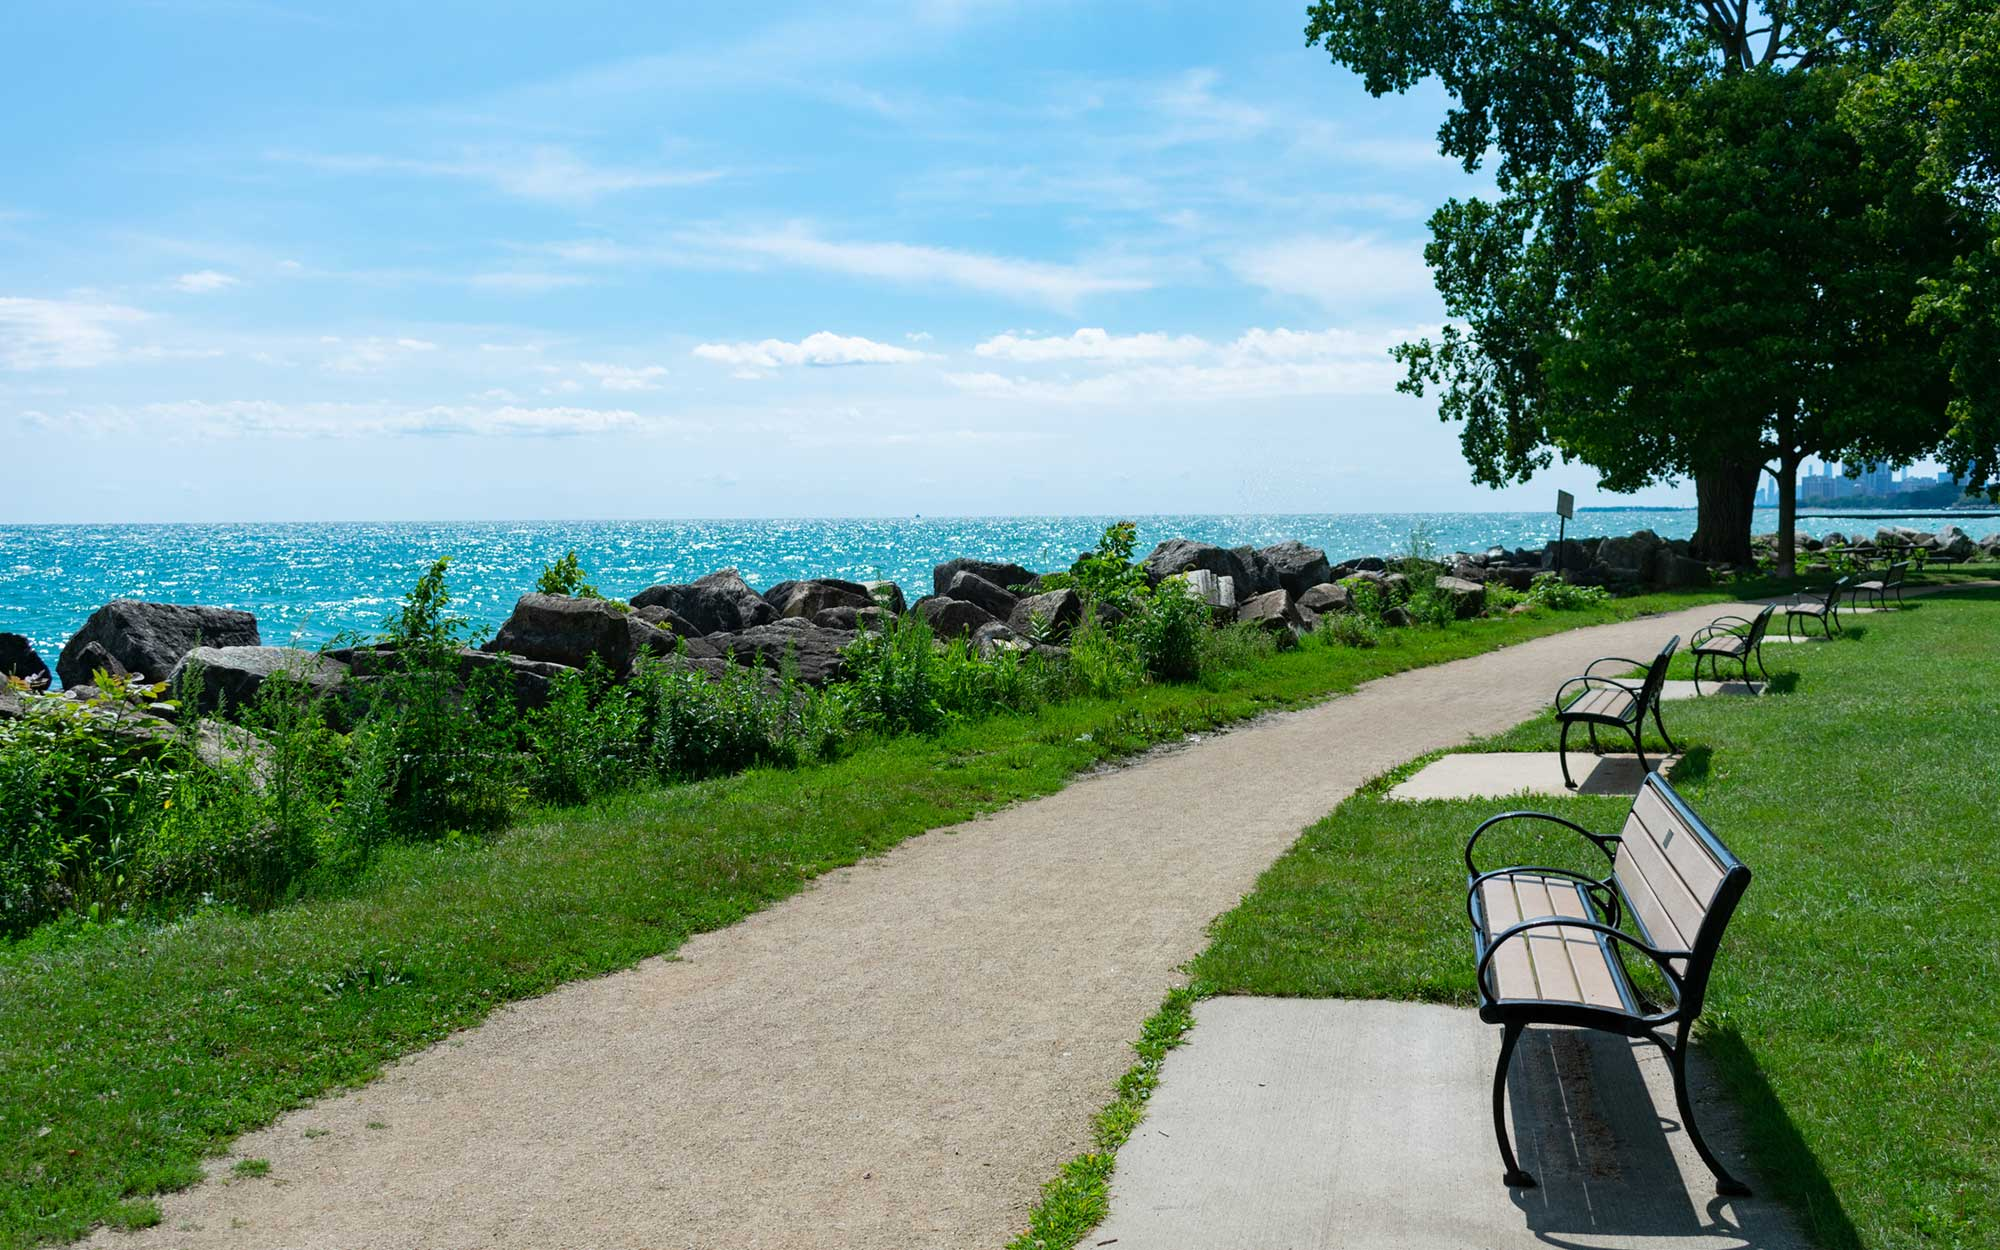 Evanston park with benches and Michigan river